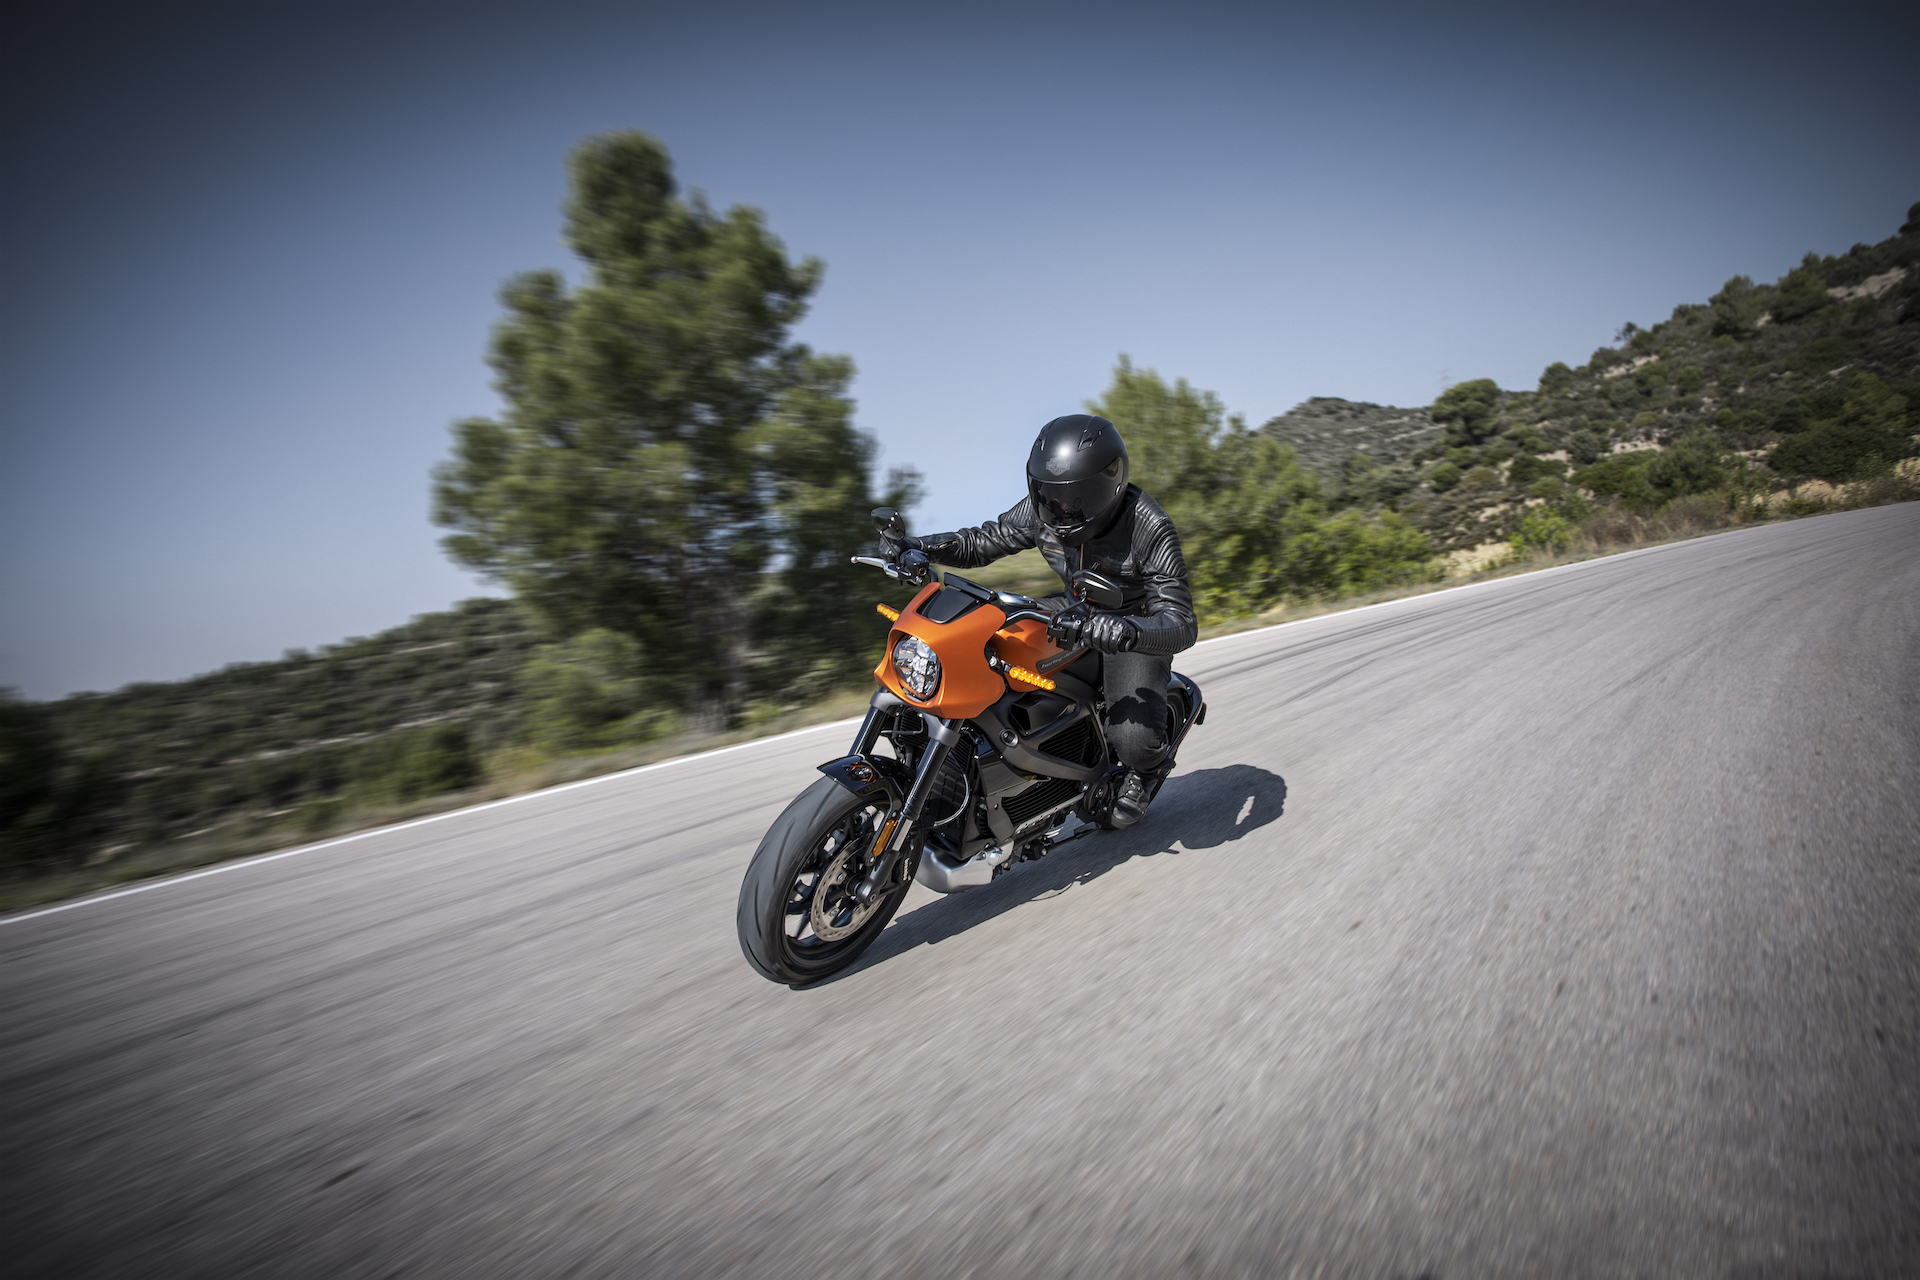 No more rumble: Harley-Davidson LiveWire electric motorcycle arrives